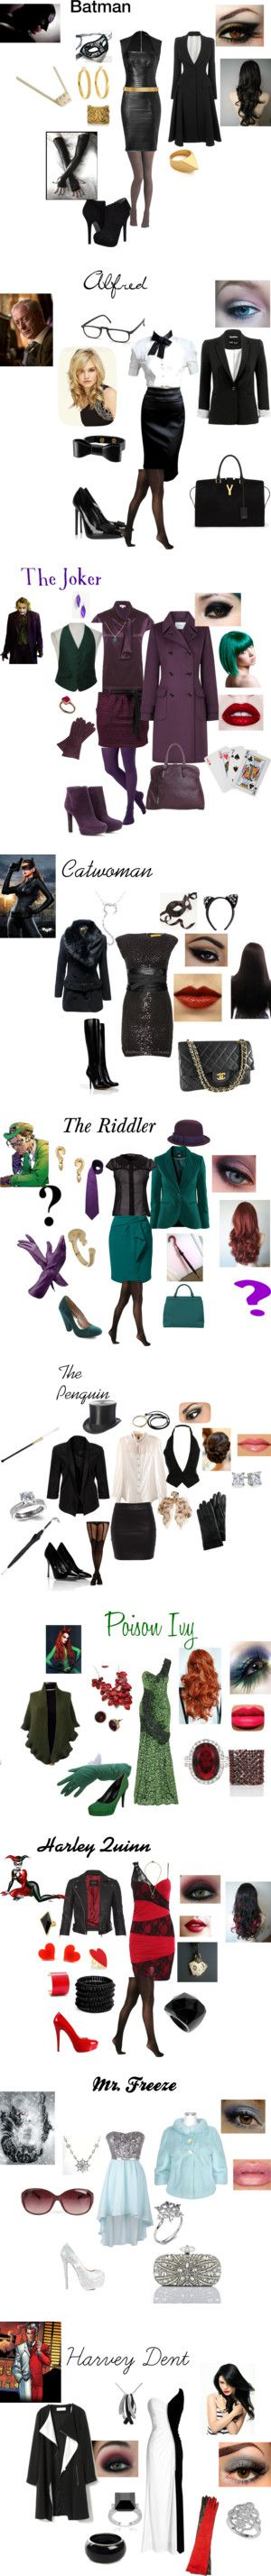 """Batman"" by nchavez113 on Polyvore Even though this isn't Disney, it makes for a great rule breaker"